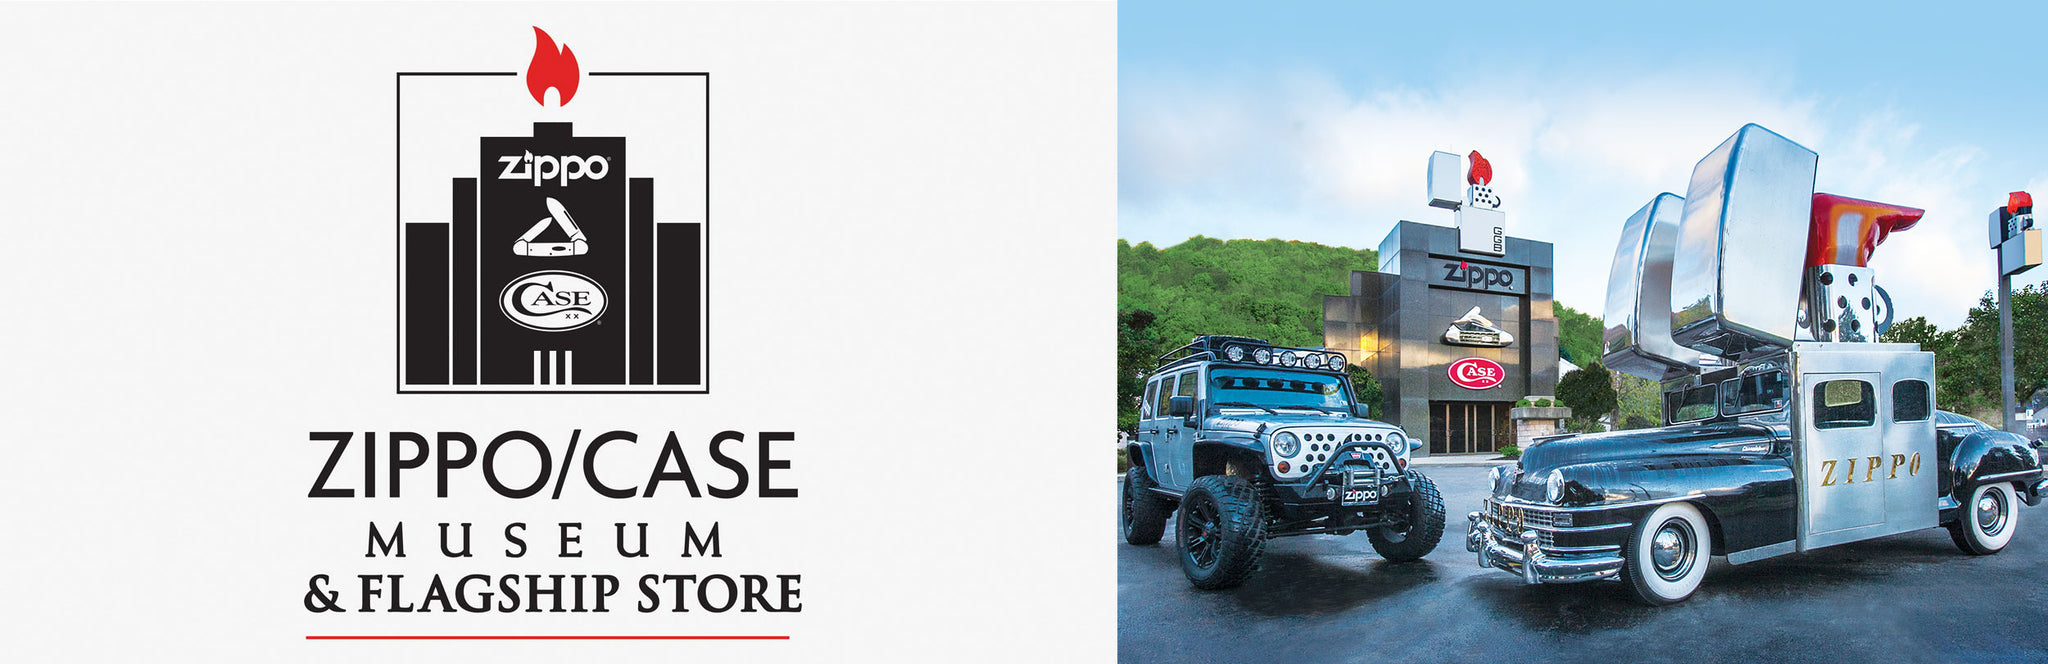 Zippo/Case Museum logo with image of the Zippo Jeep and Zippo Car.